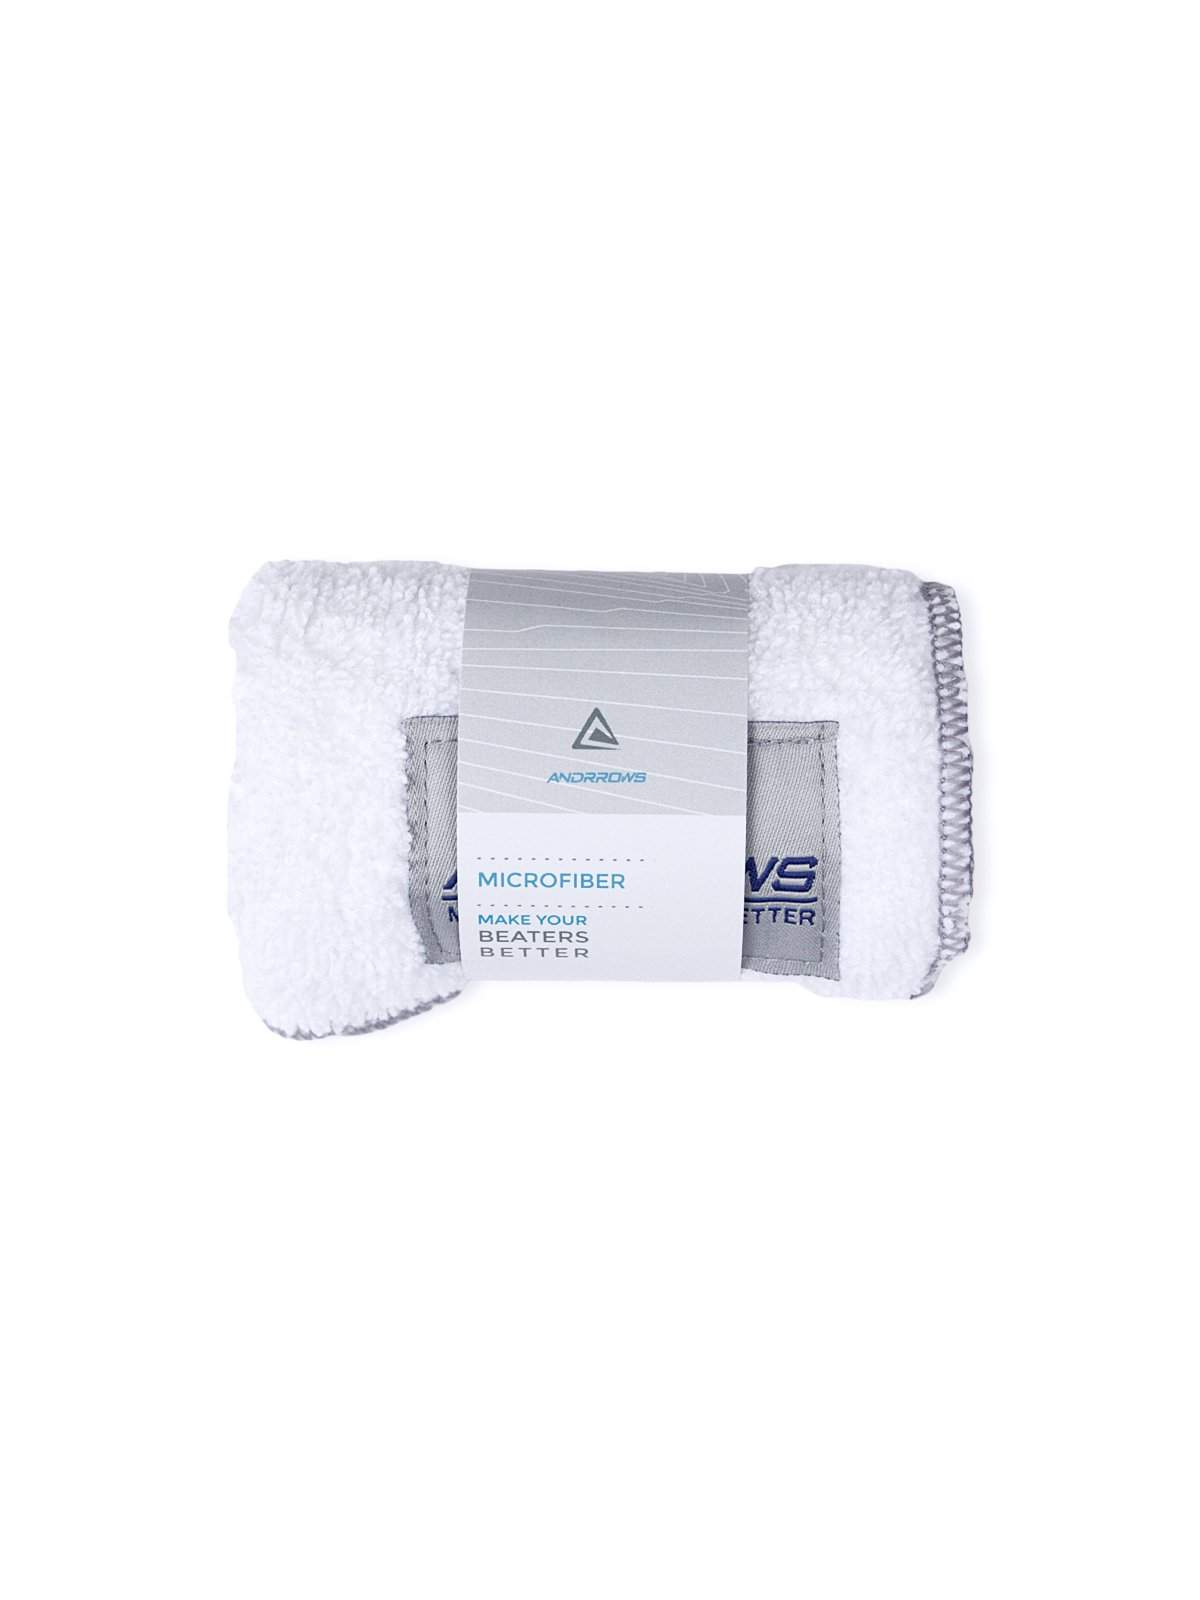 Andrrows Microfiber Towel - MORE by Morello Indonesia